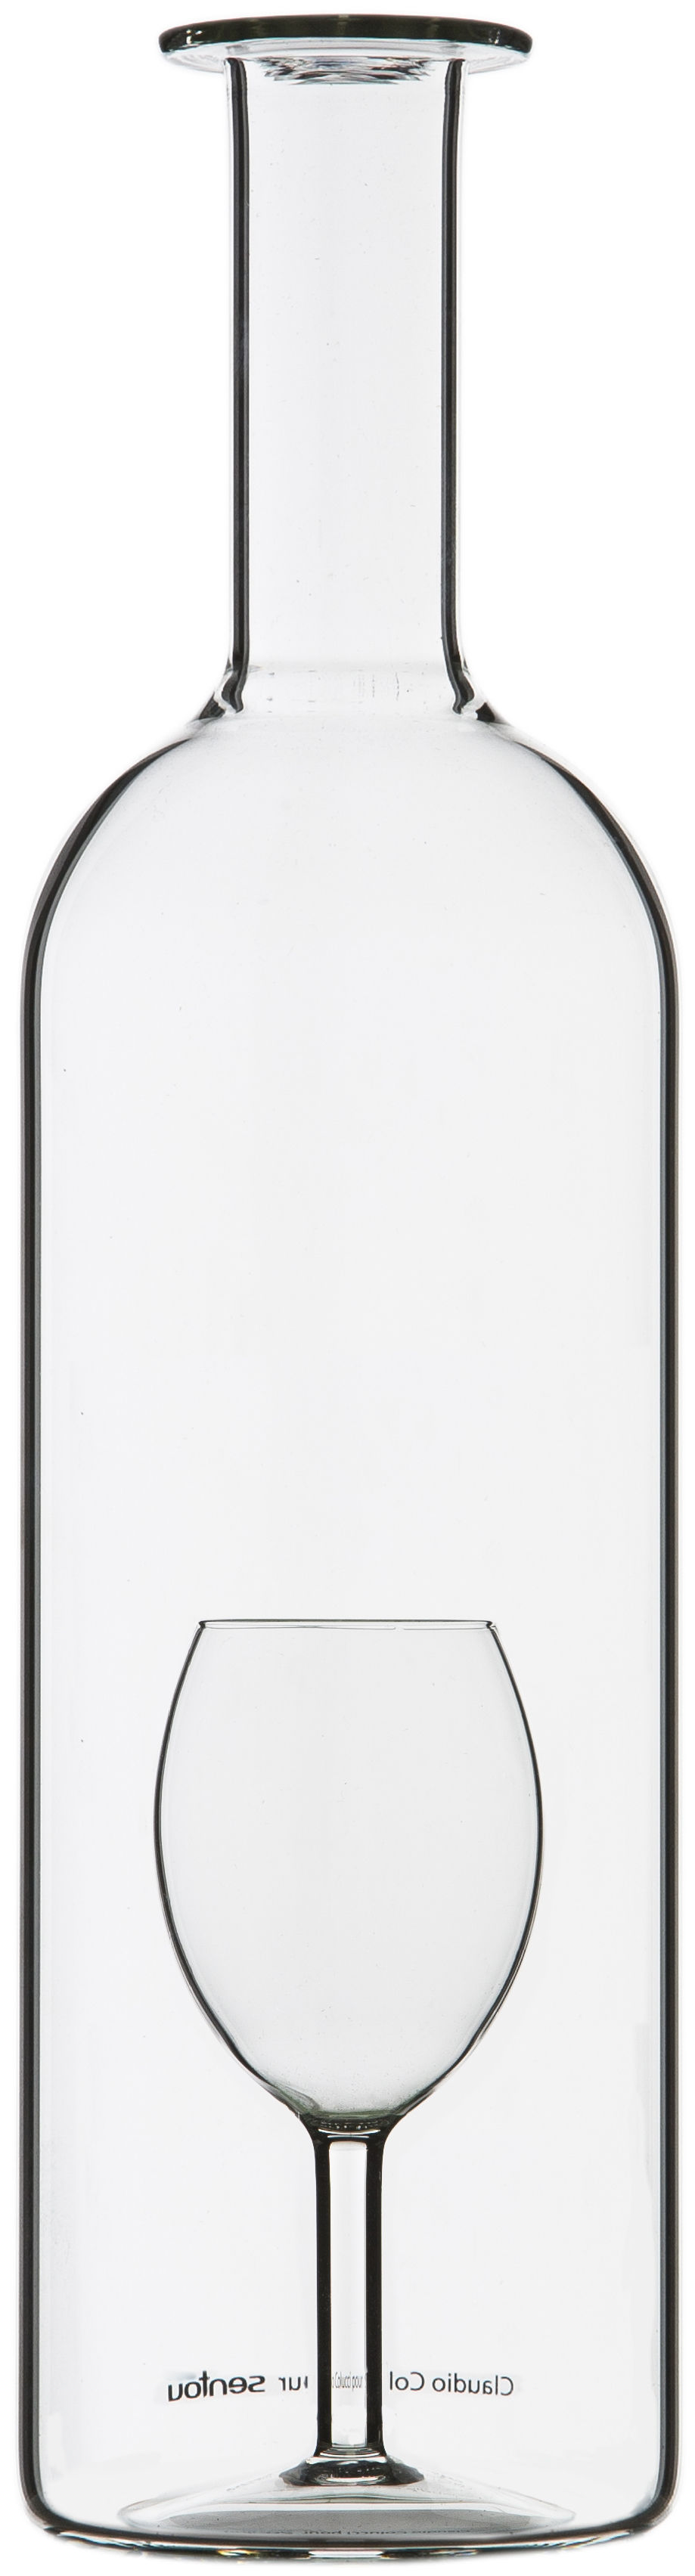 Tableware - Water Carafes & Wine Decanters - Un Verre' Carafe by Sentou Edition - 175 cl - Clear - Mouth blown glass